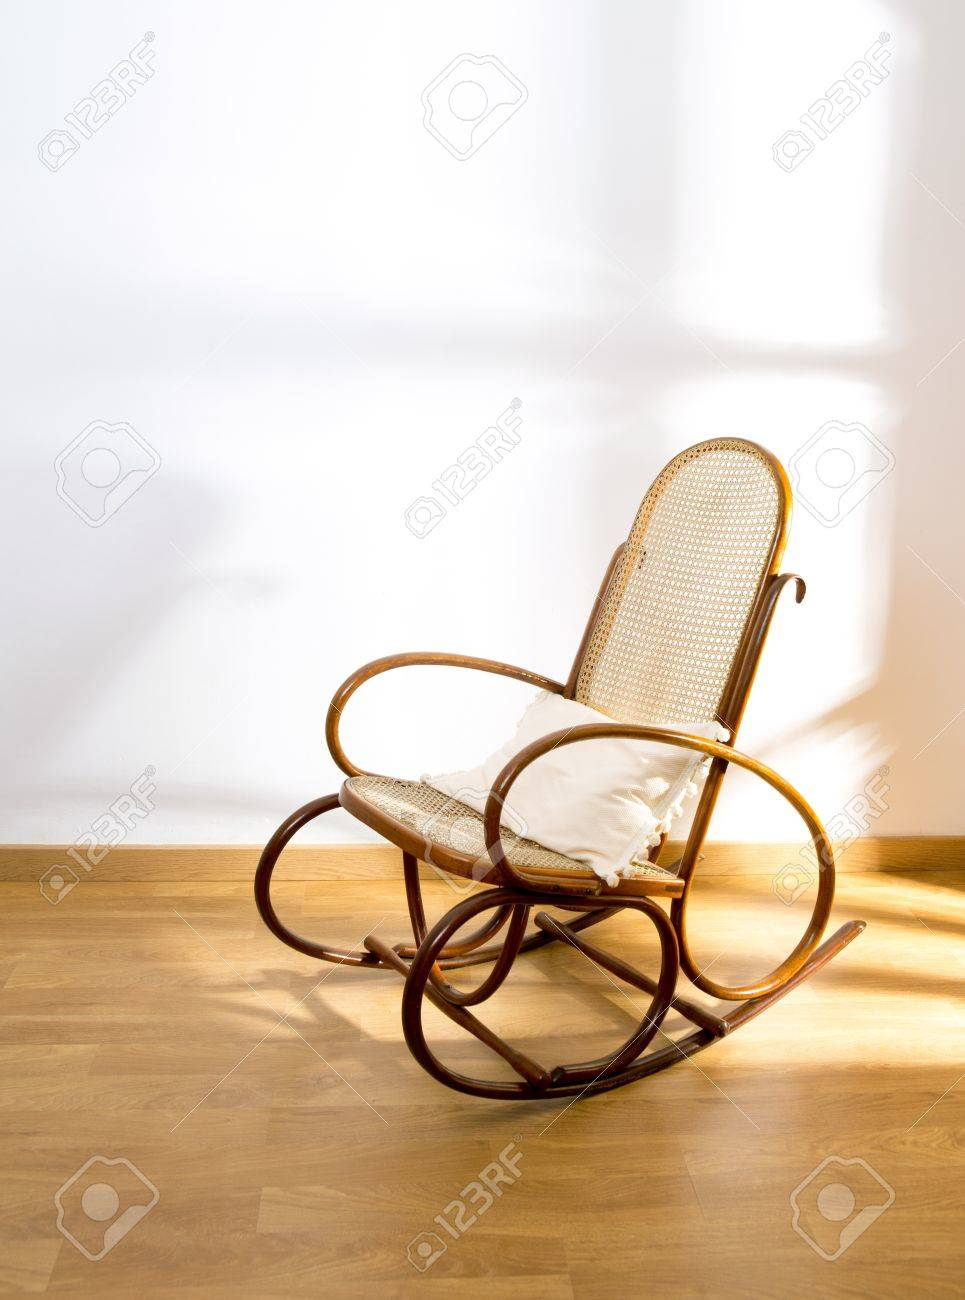 Golden Retro Rocker Wooden Swing Chair On Wood Floor As A Vintage Memories  Stock Photo